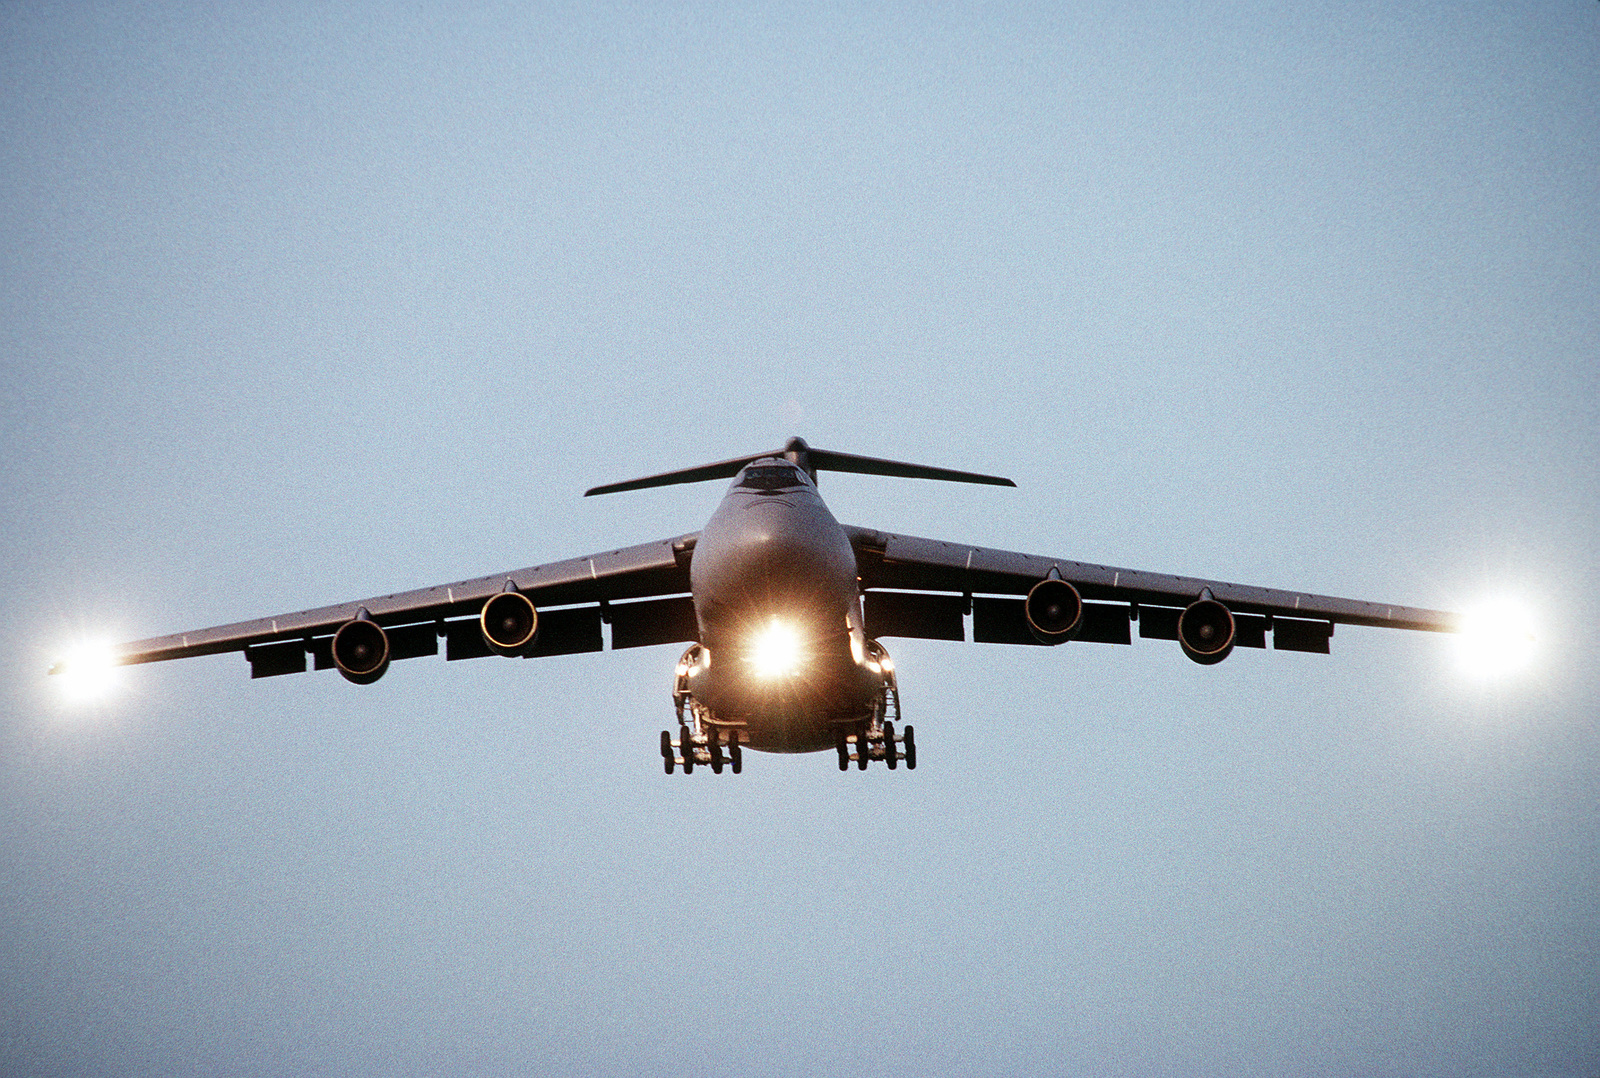 A front view of a 60th Airlift Wing C-5 Galaxy transport, with